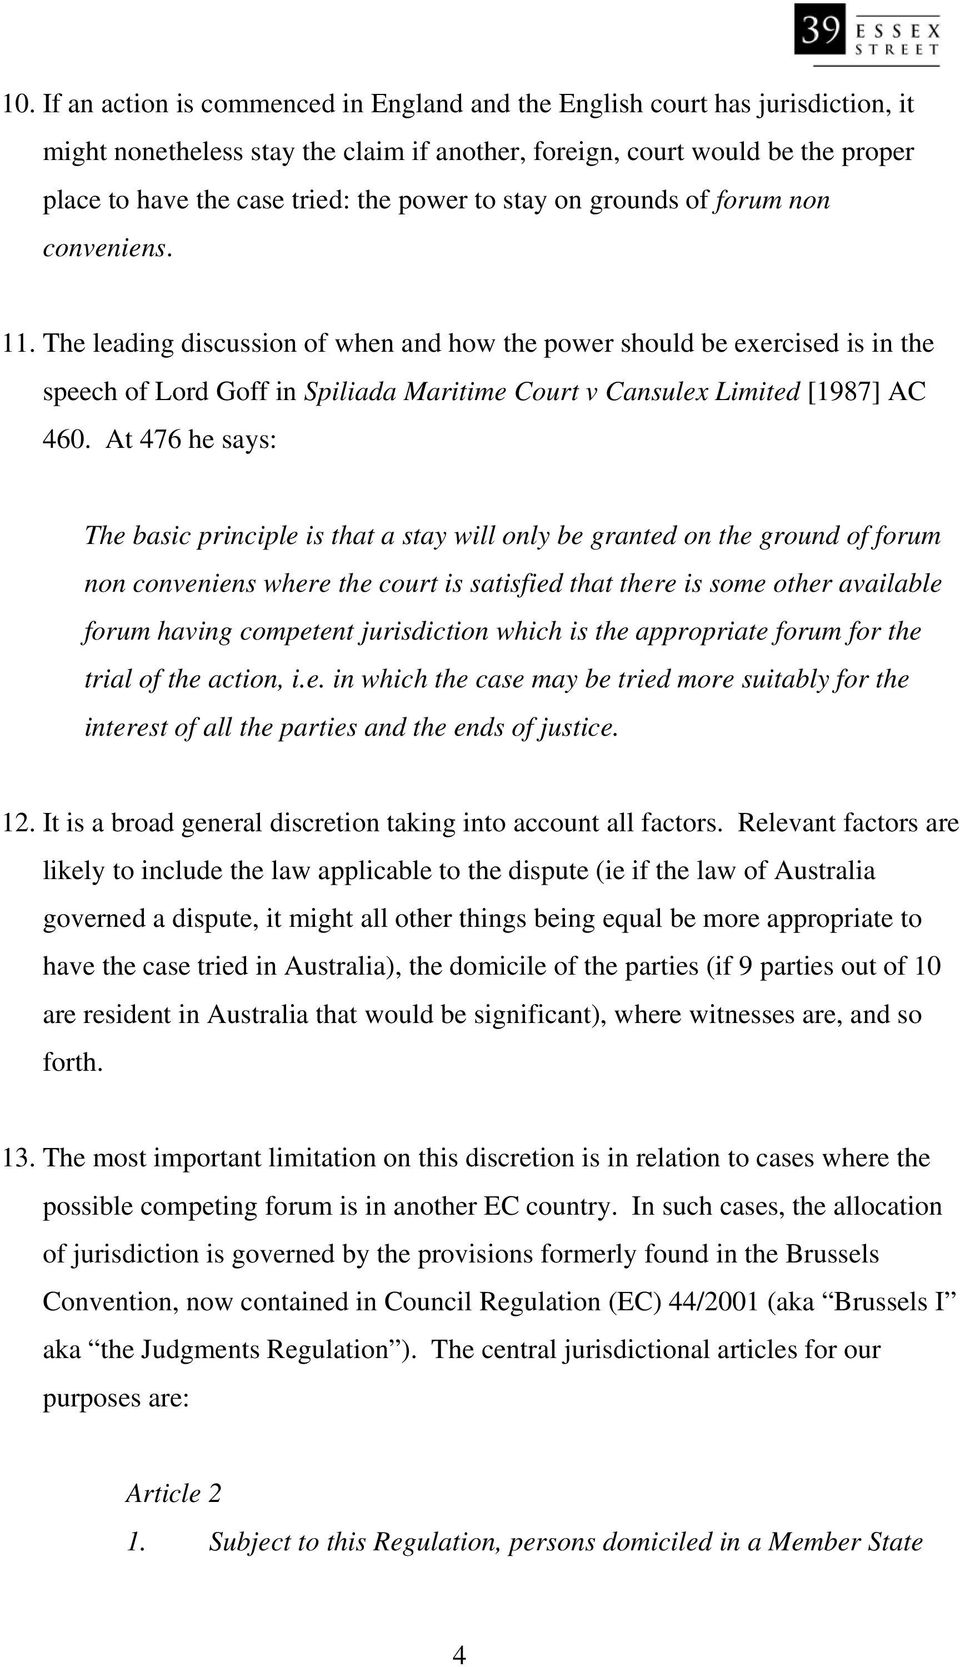 The leading discussion of when and how the power should be exercised is in the speech of Lord Goff in Spiliada Maritime Court v Cansulex Limited [1987] AC 460.